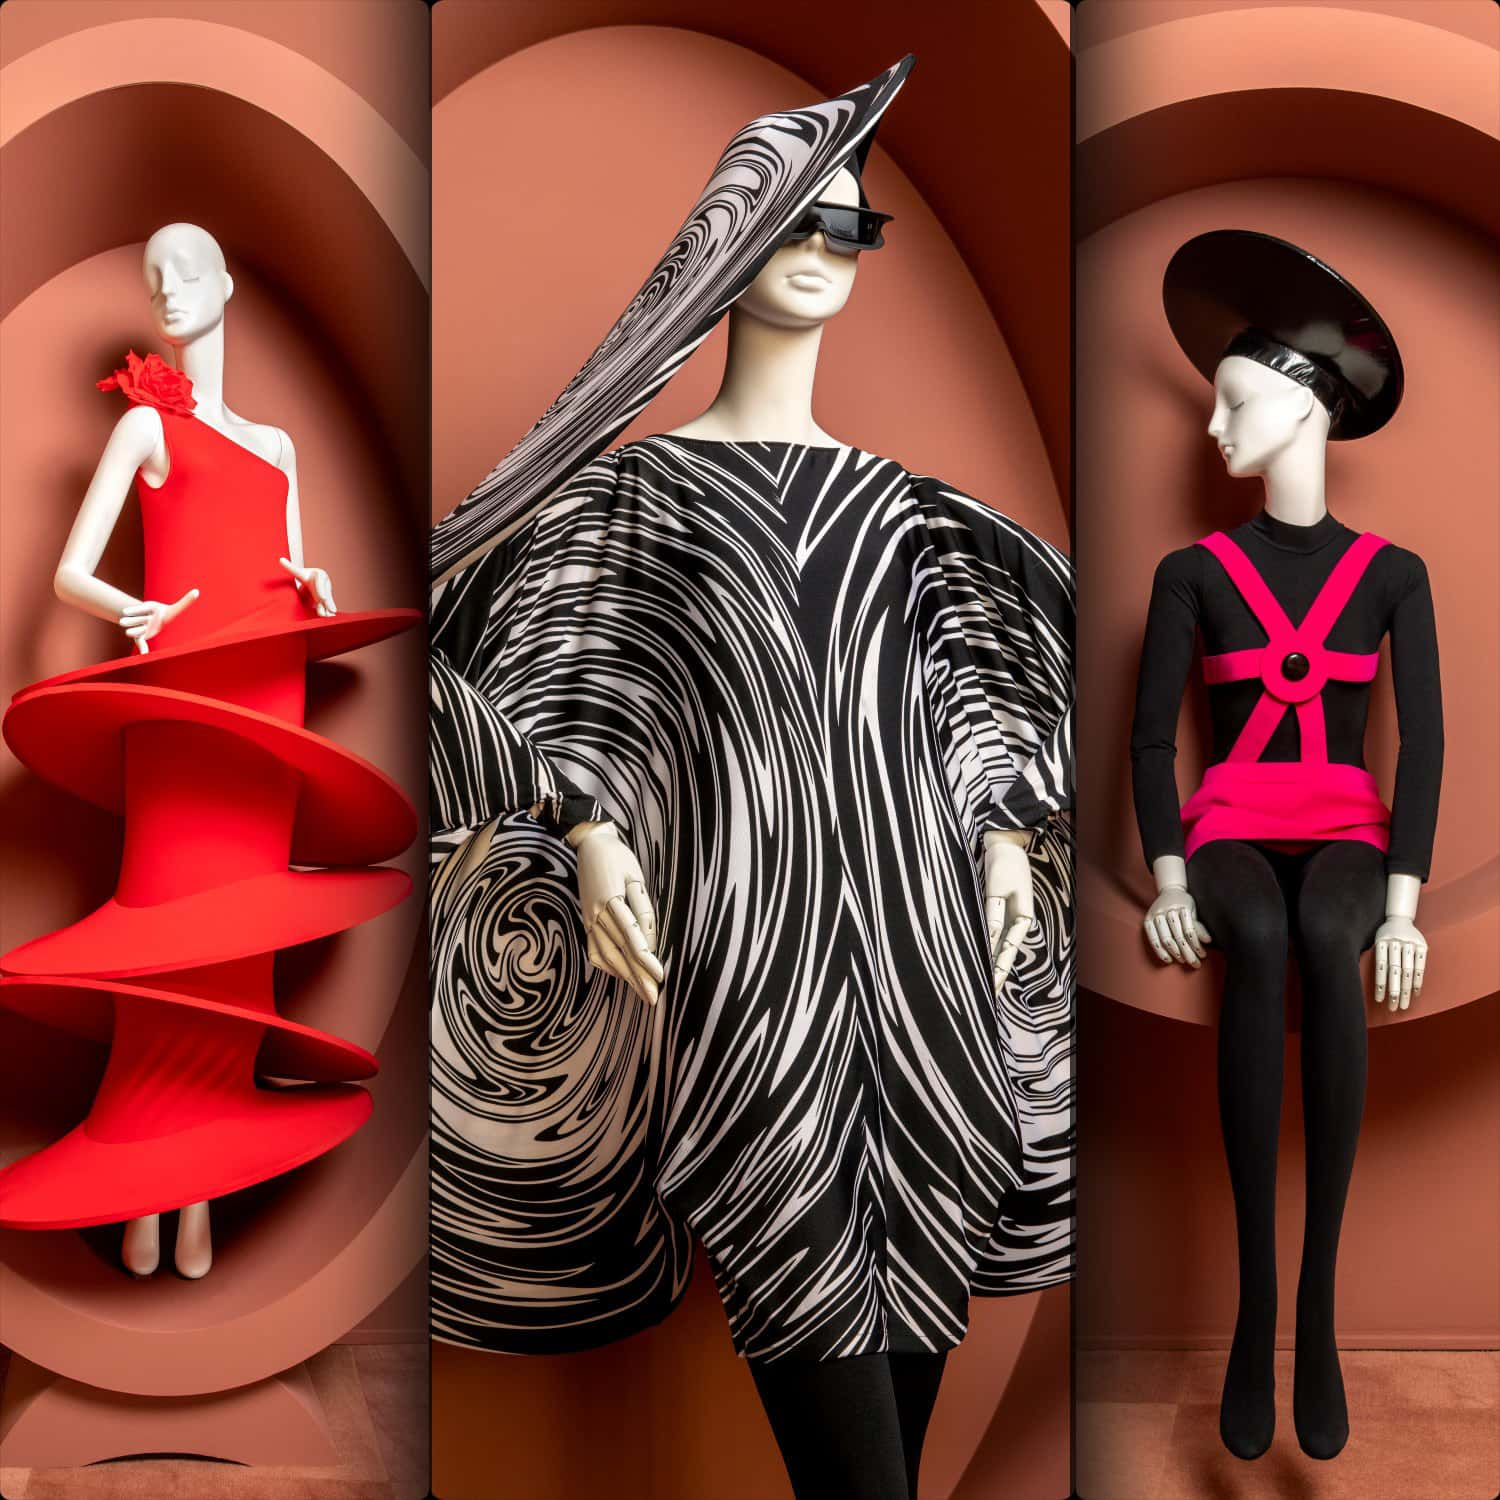 SCAD Lacoste - the University for creative careers - Exhibitions Pierre Cardin - RUNWAY MAGAZINE